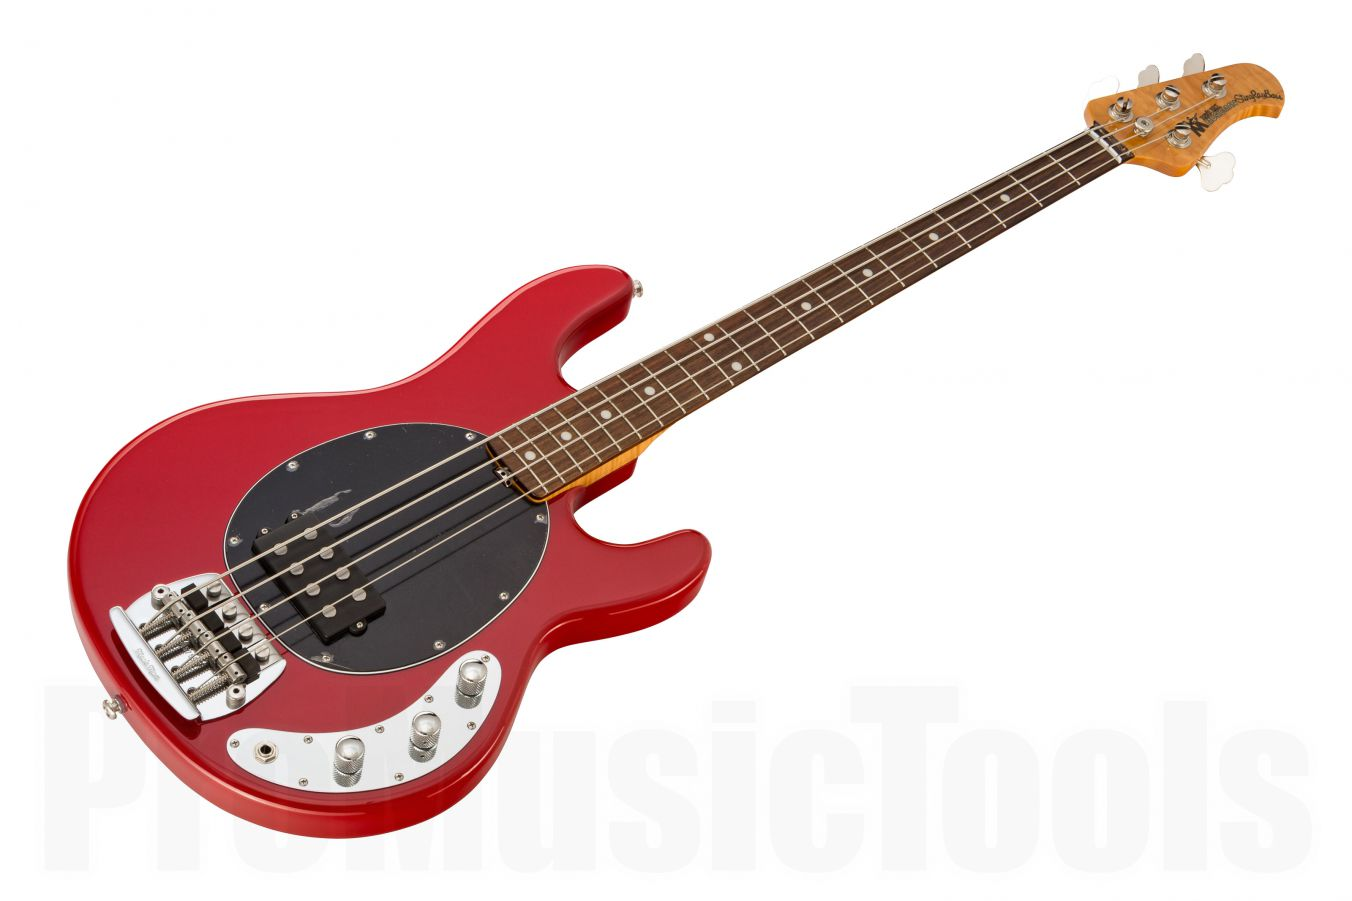 Music Man USA Classic Stingray 4 CLR - Classic Red RW Flame BKPG